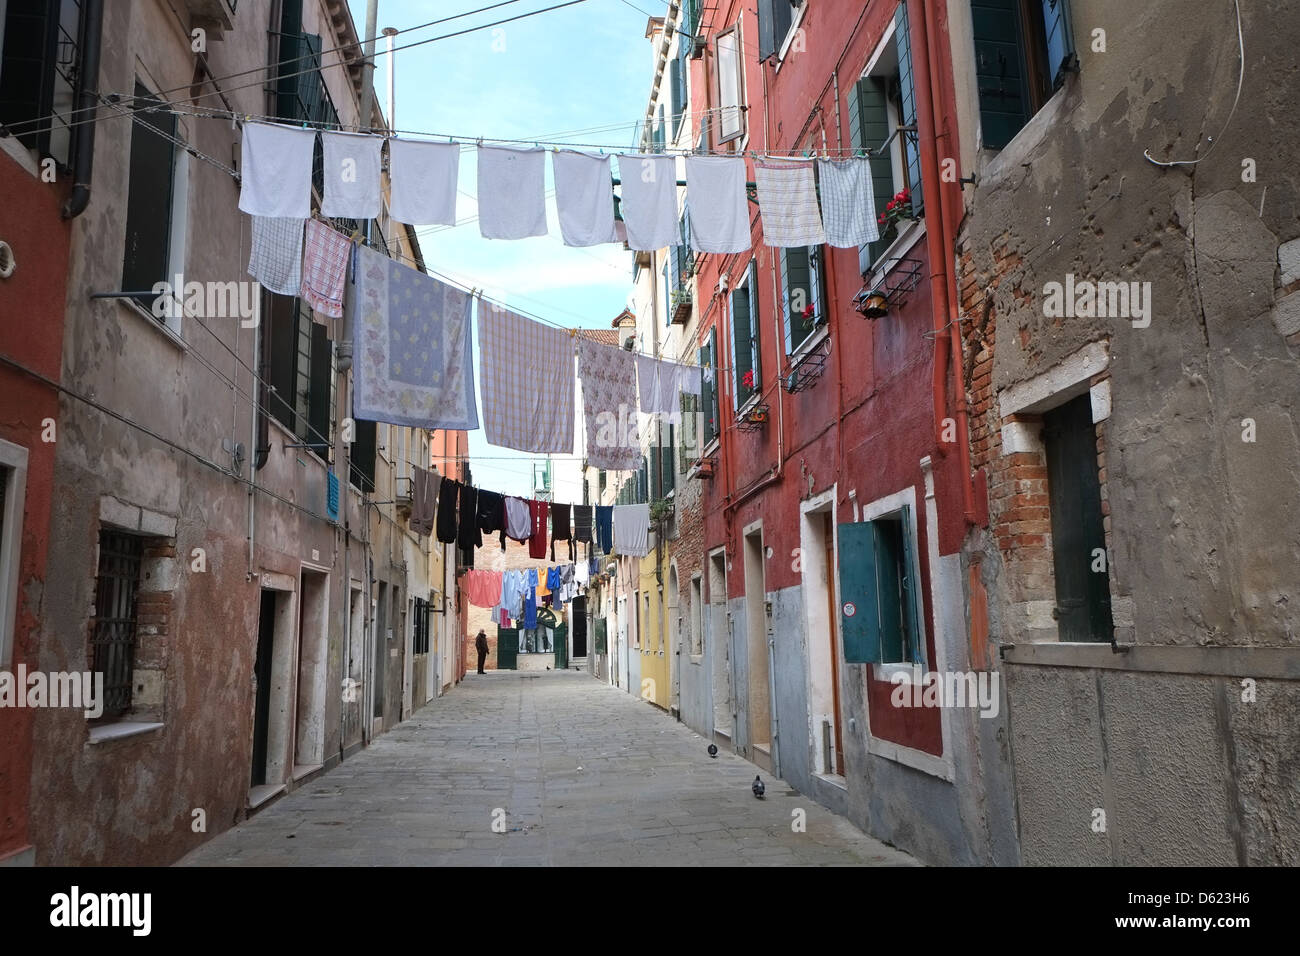 Washing hung out between apartments in Arsenale district of Venice, Italy - Stock Image